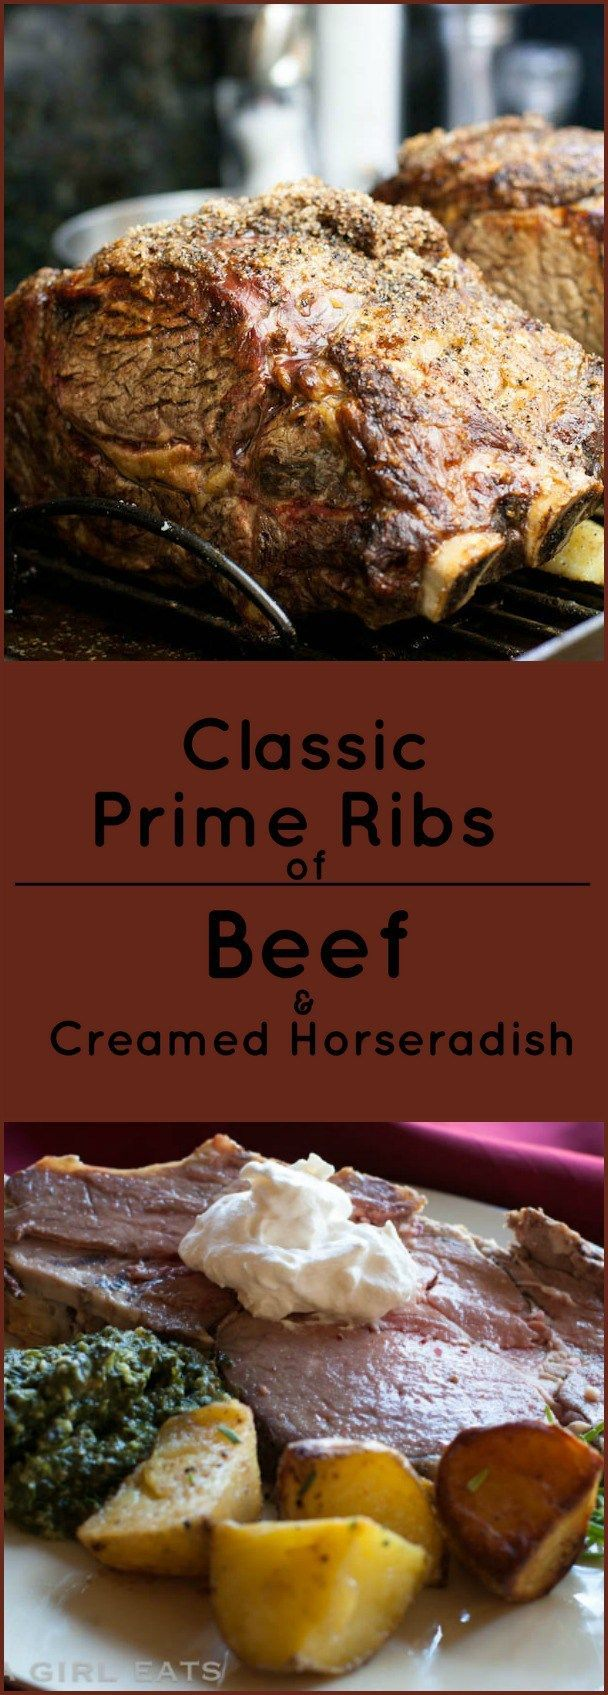 Classic prime ribs of beef with creamed horseradish, just like Lawry's Prime Rib Restaurant. Gluten free! Paleo.